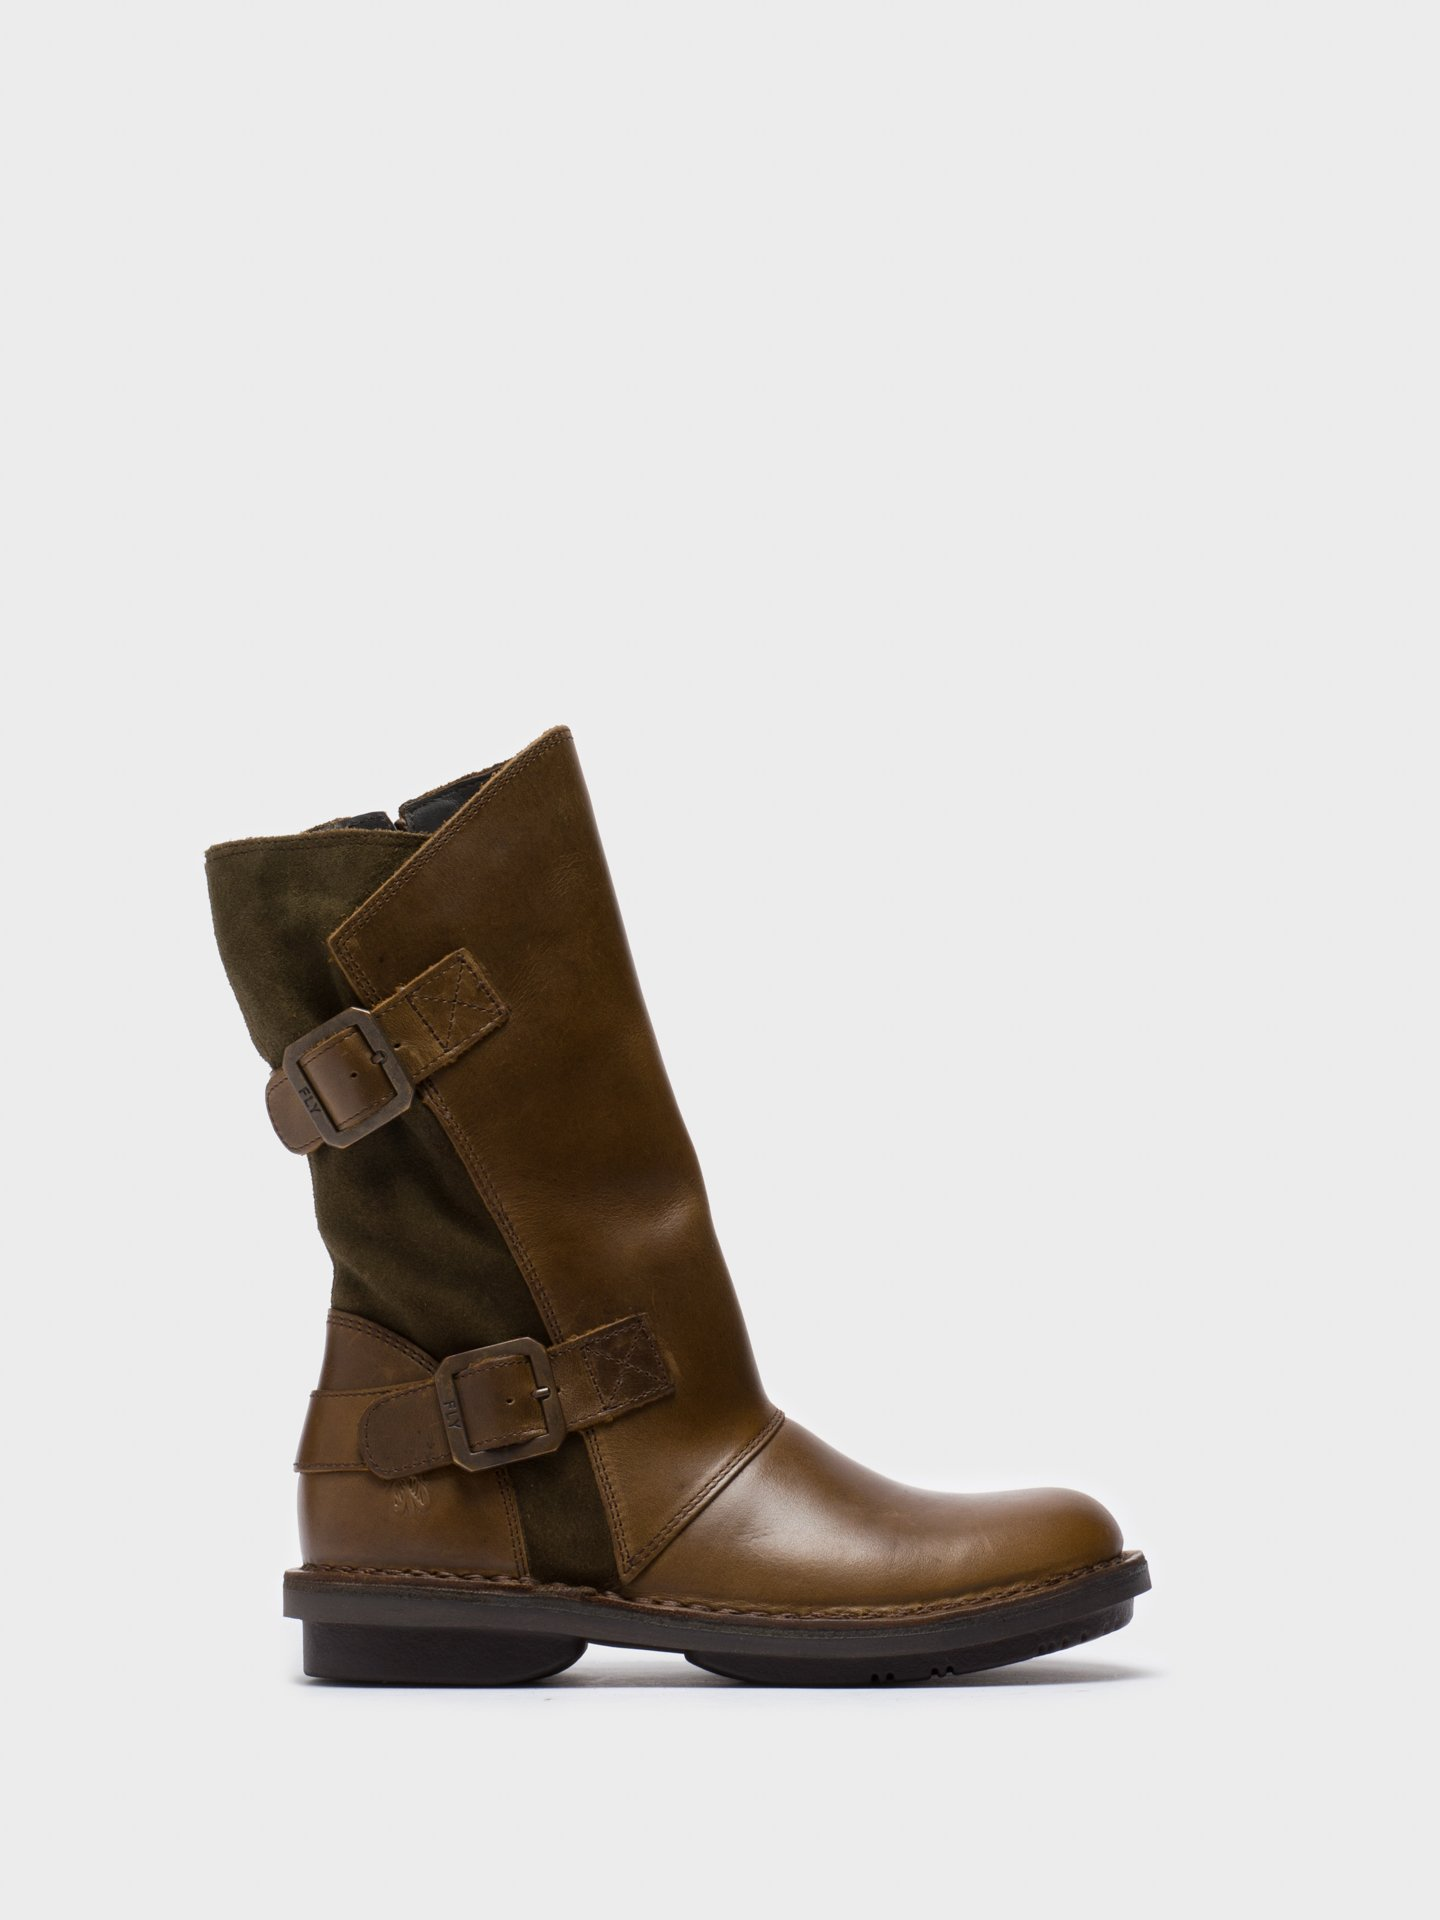 Berwick upon Tweed-Lime Shoe Co-Fly London-Ladies Mid Calf Boot-winter-buckle-zip